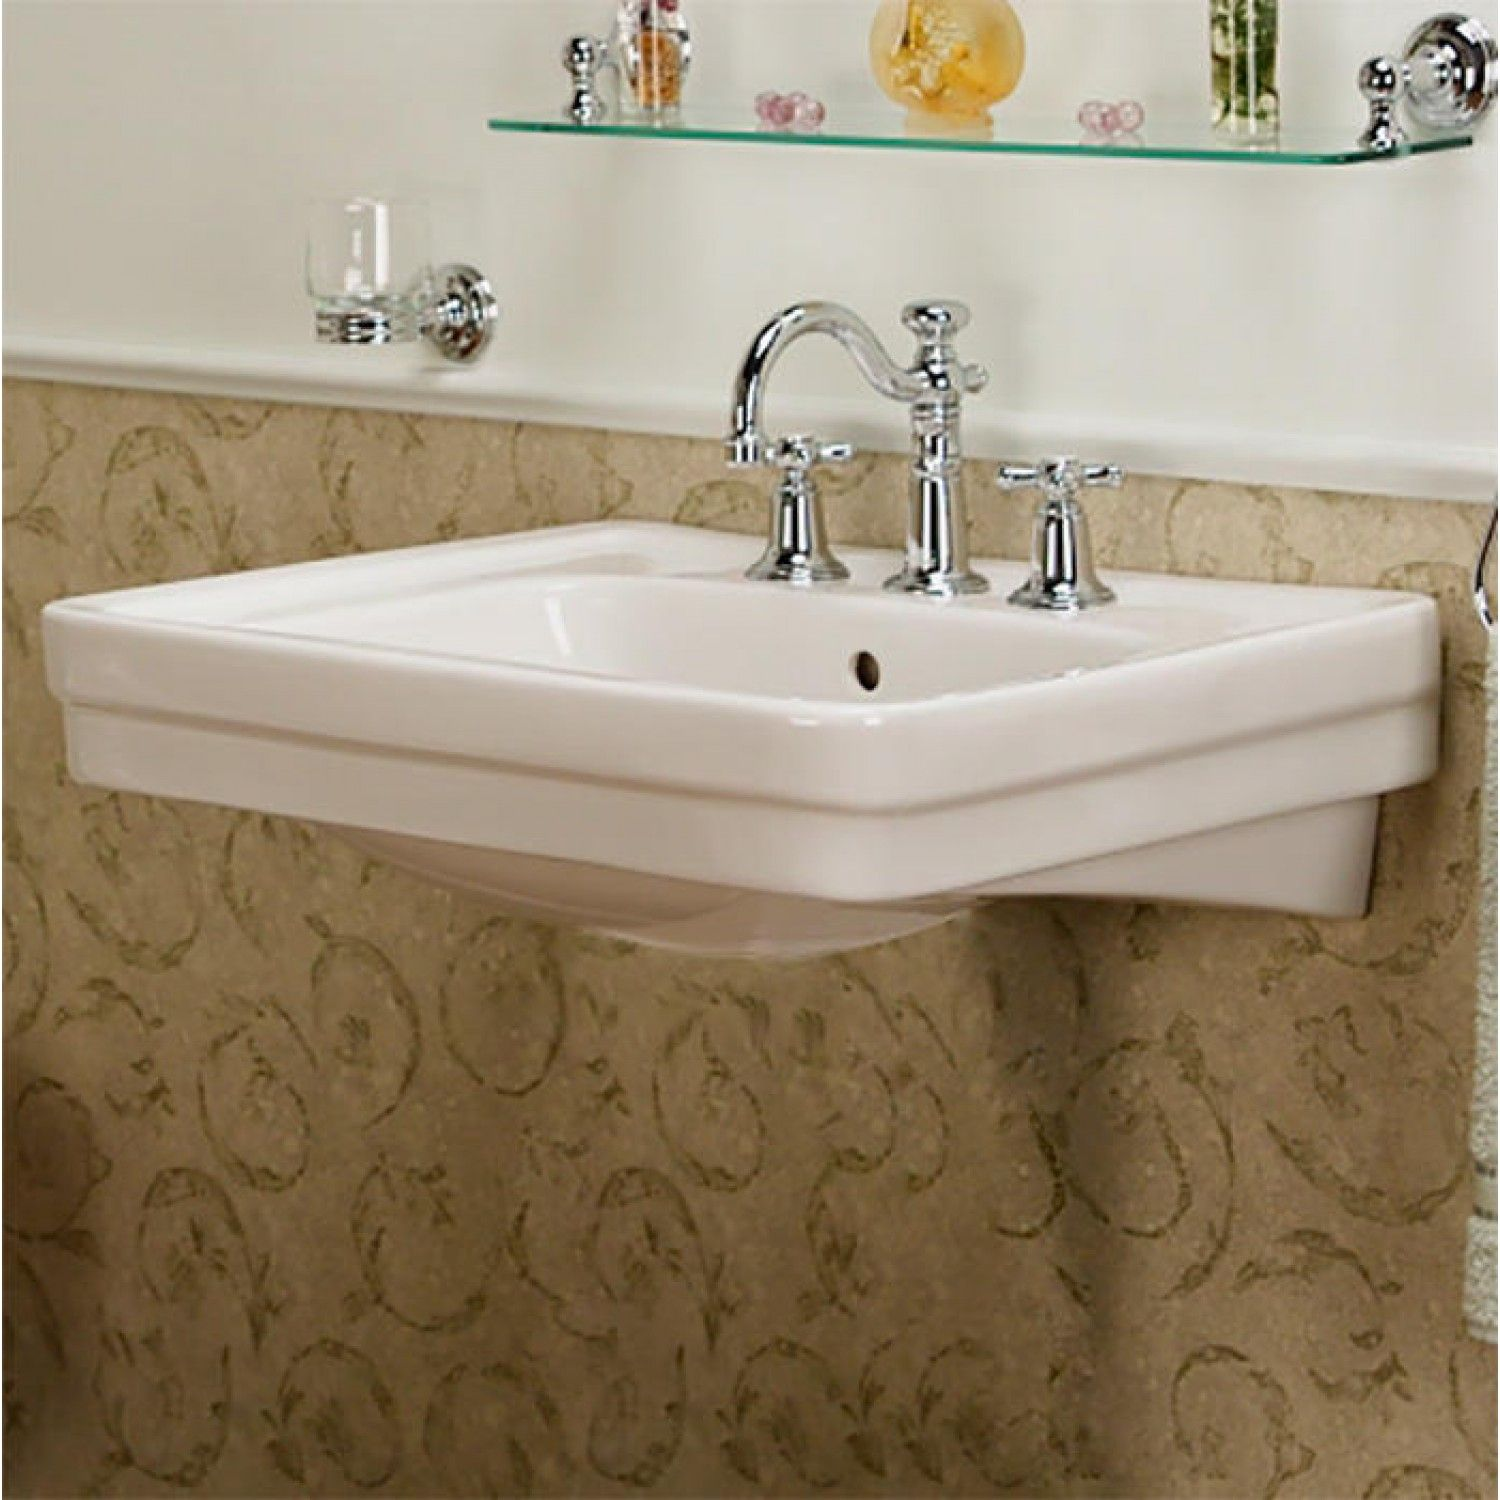 sussex wall mount bathroom sink wall mount sinks on wall mount id=76436